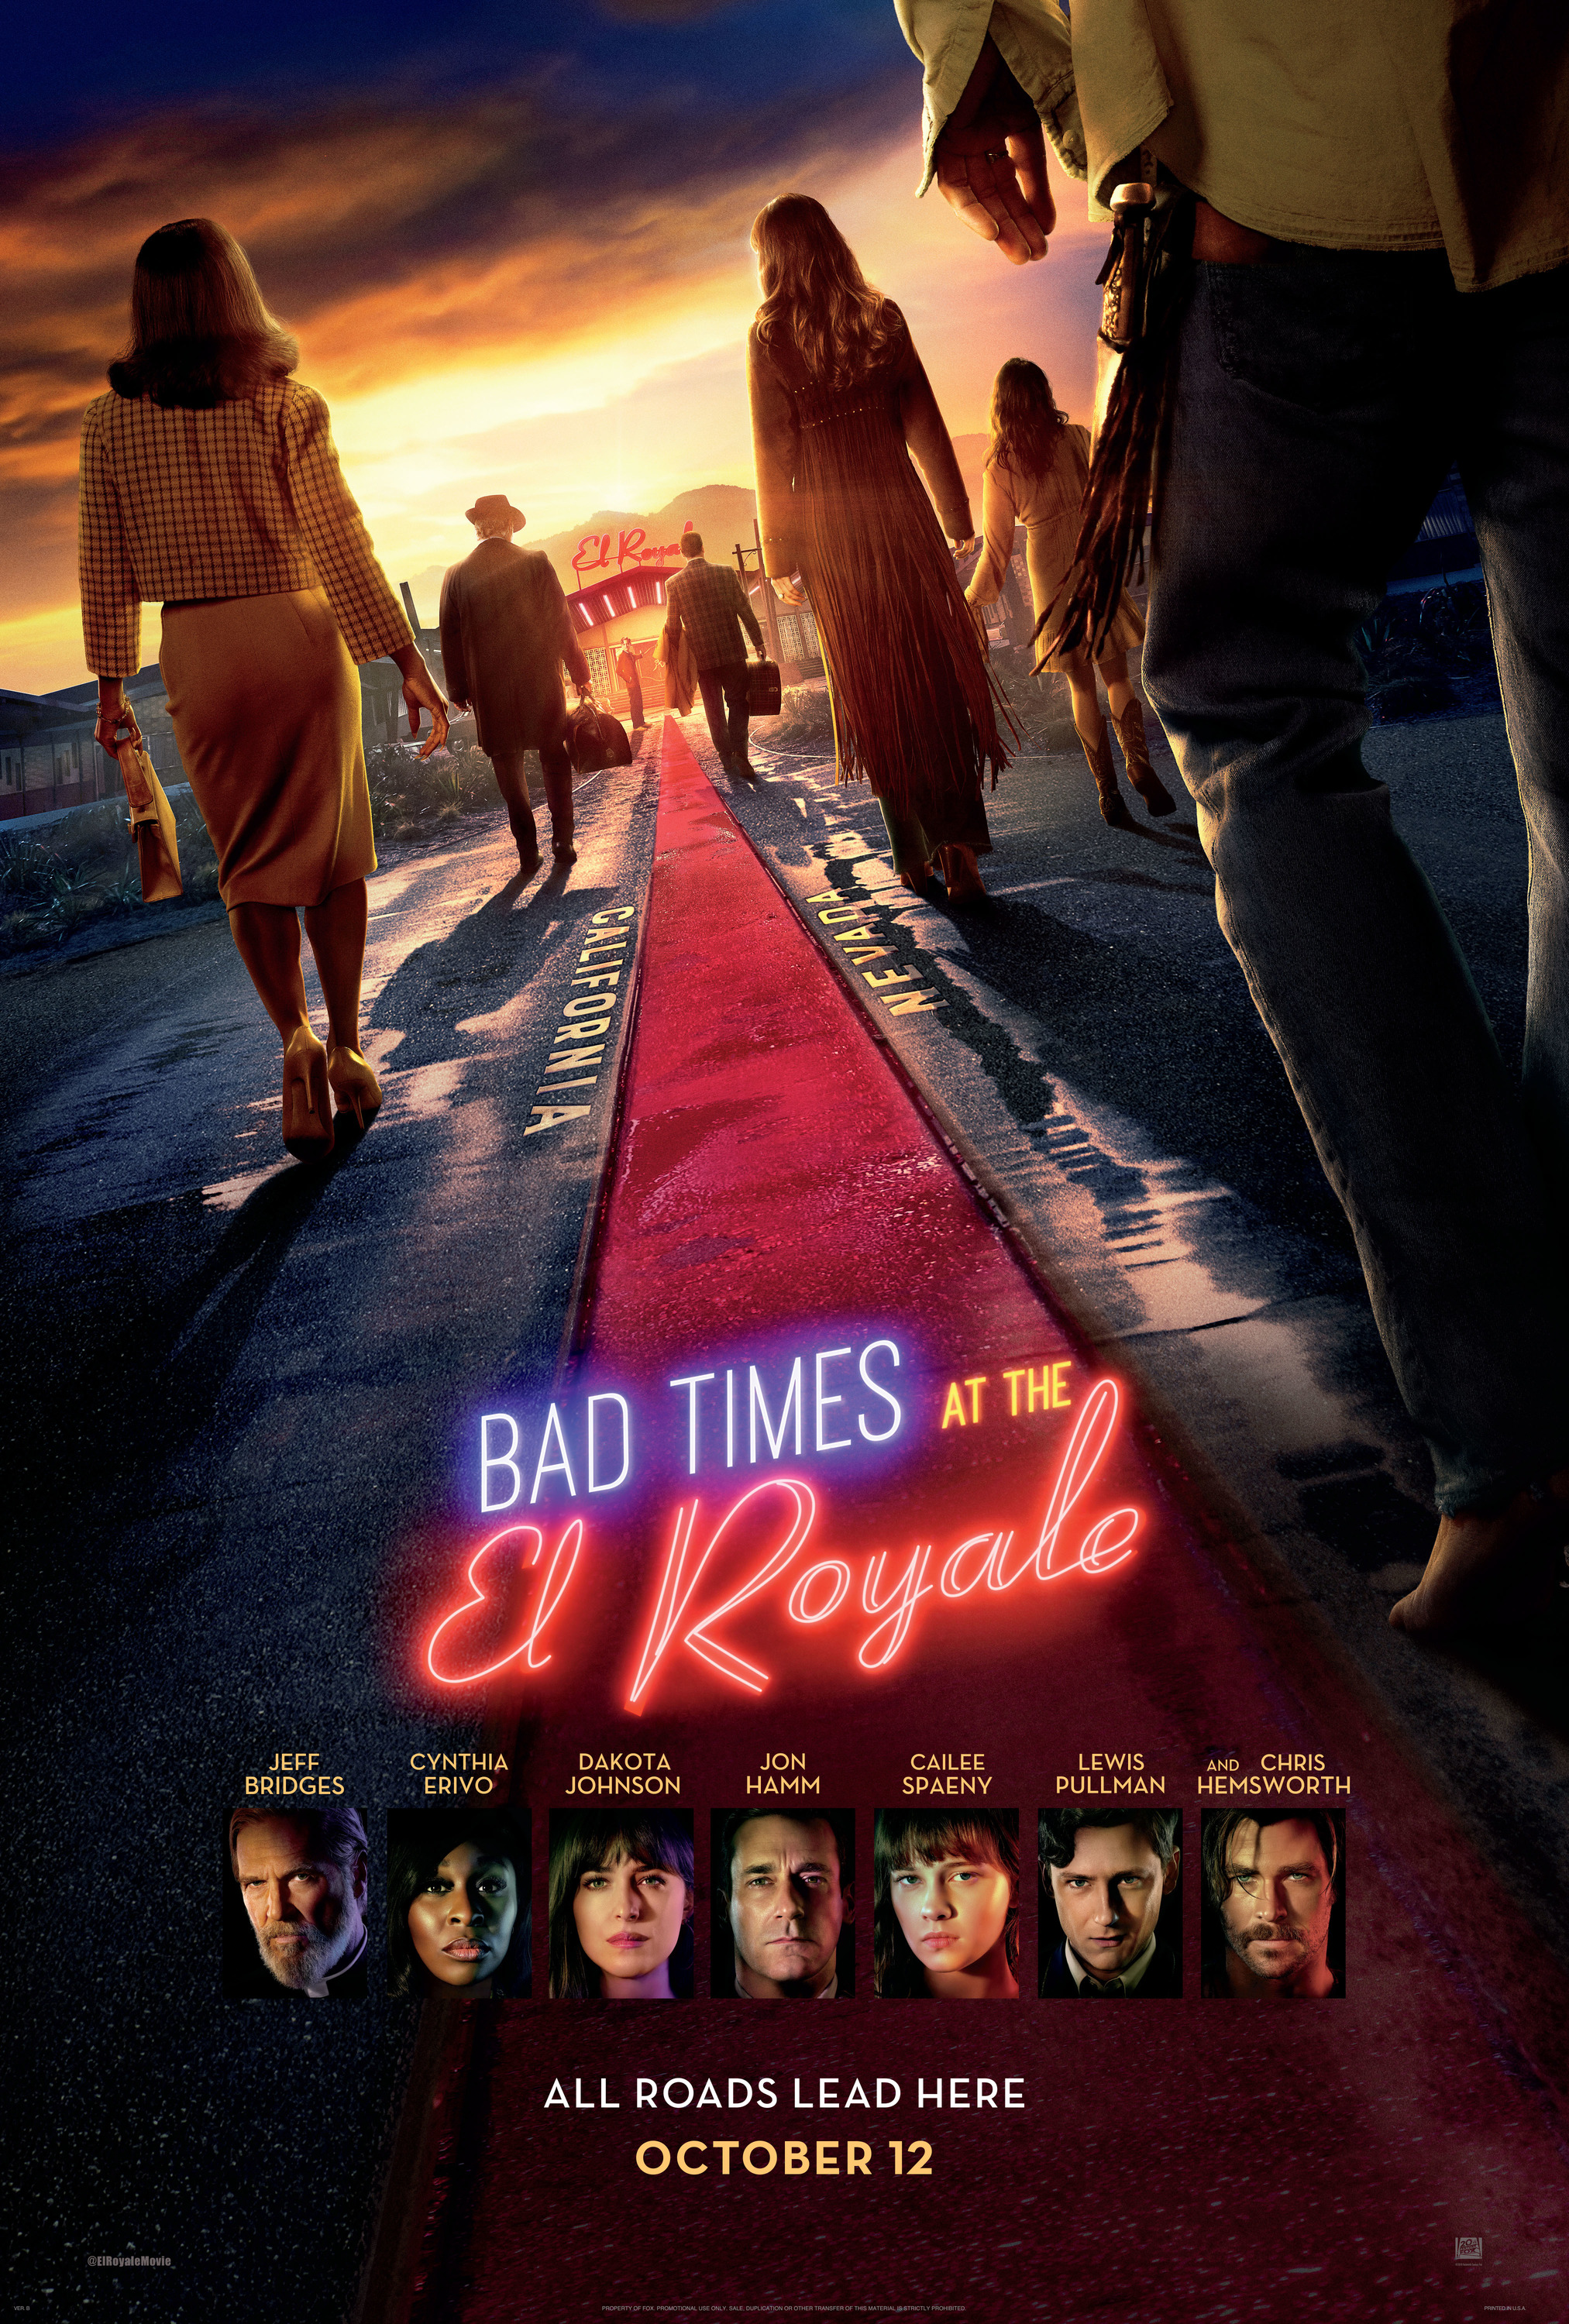 Bikini Royale Trailer new poster & trailer for bad times at the el royale